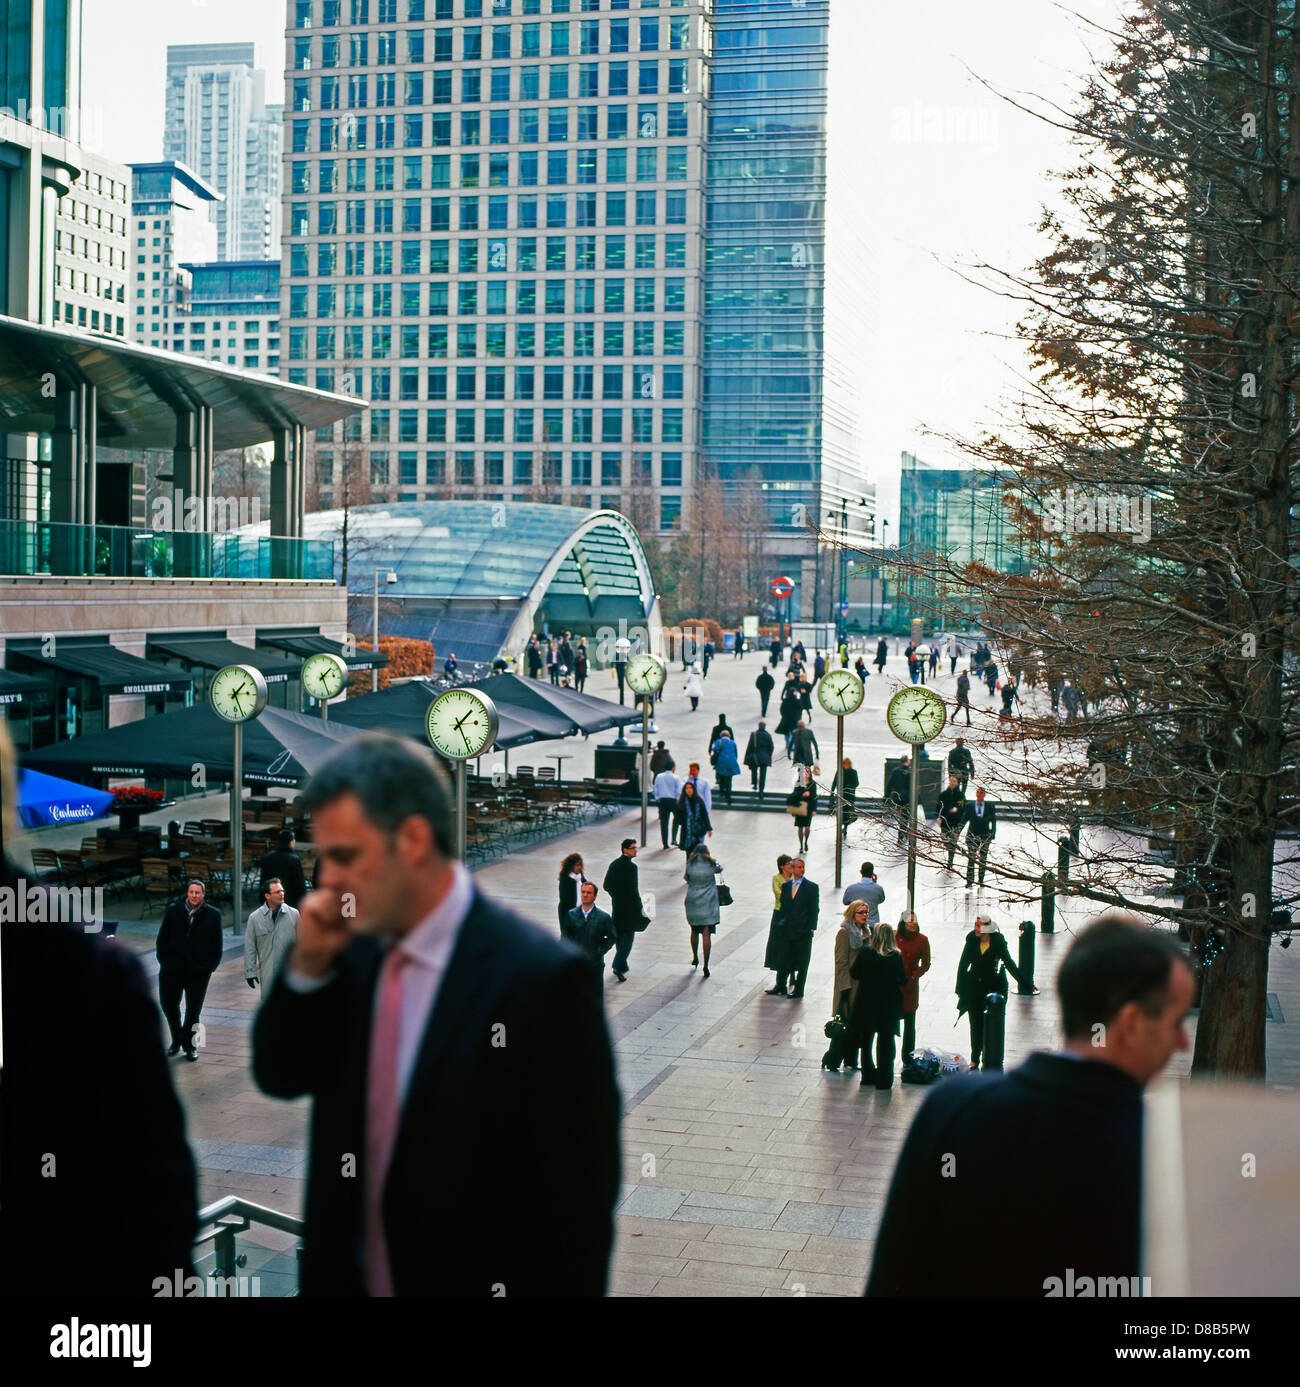 A businessman talking on mobile phone during 2008 banking crash in Canada Square Canary Wharf financial district - Stock Image